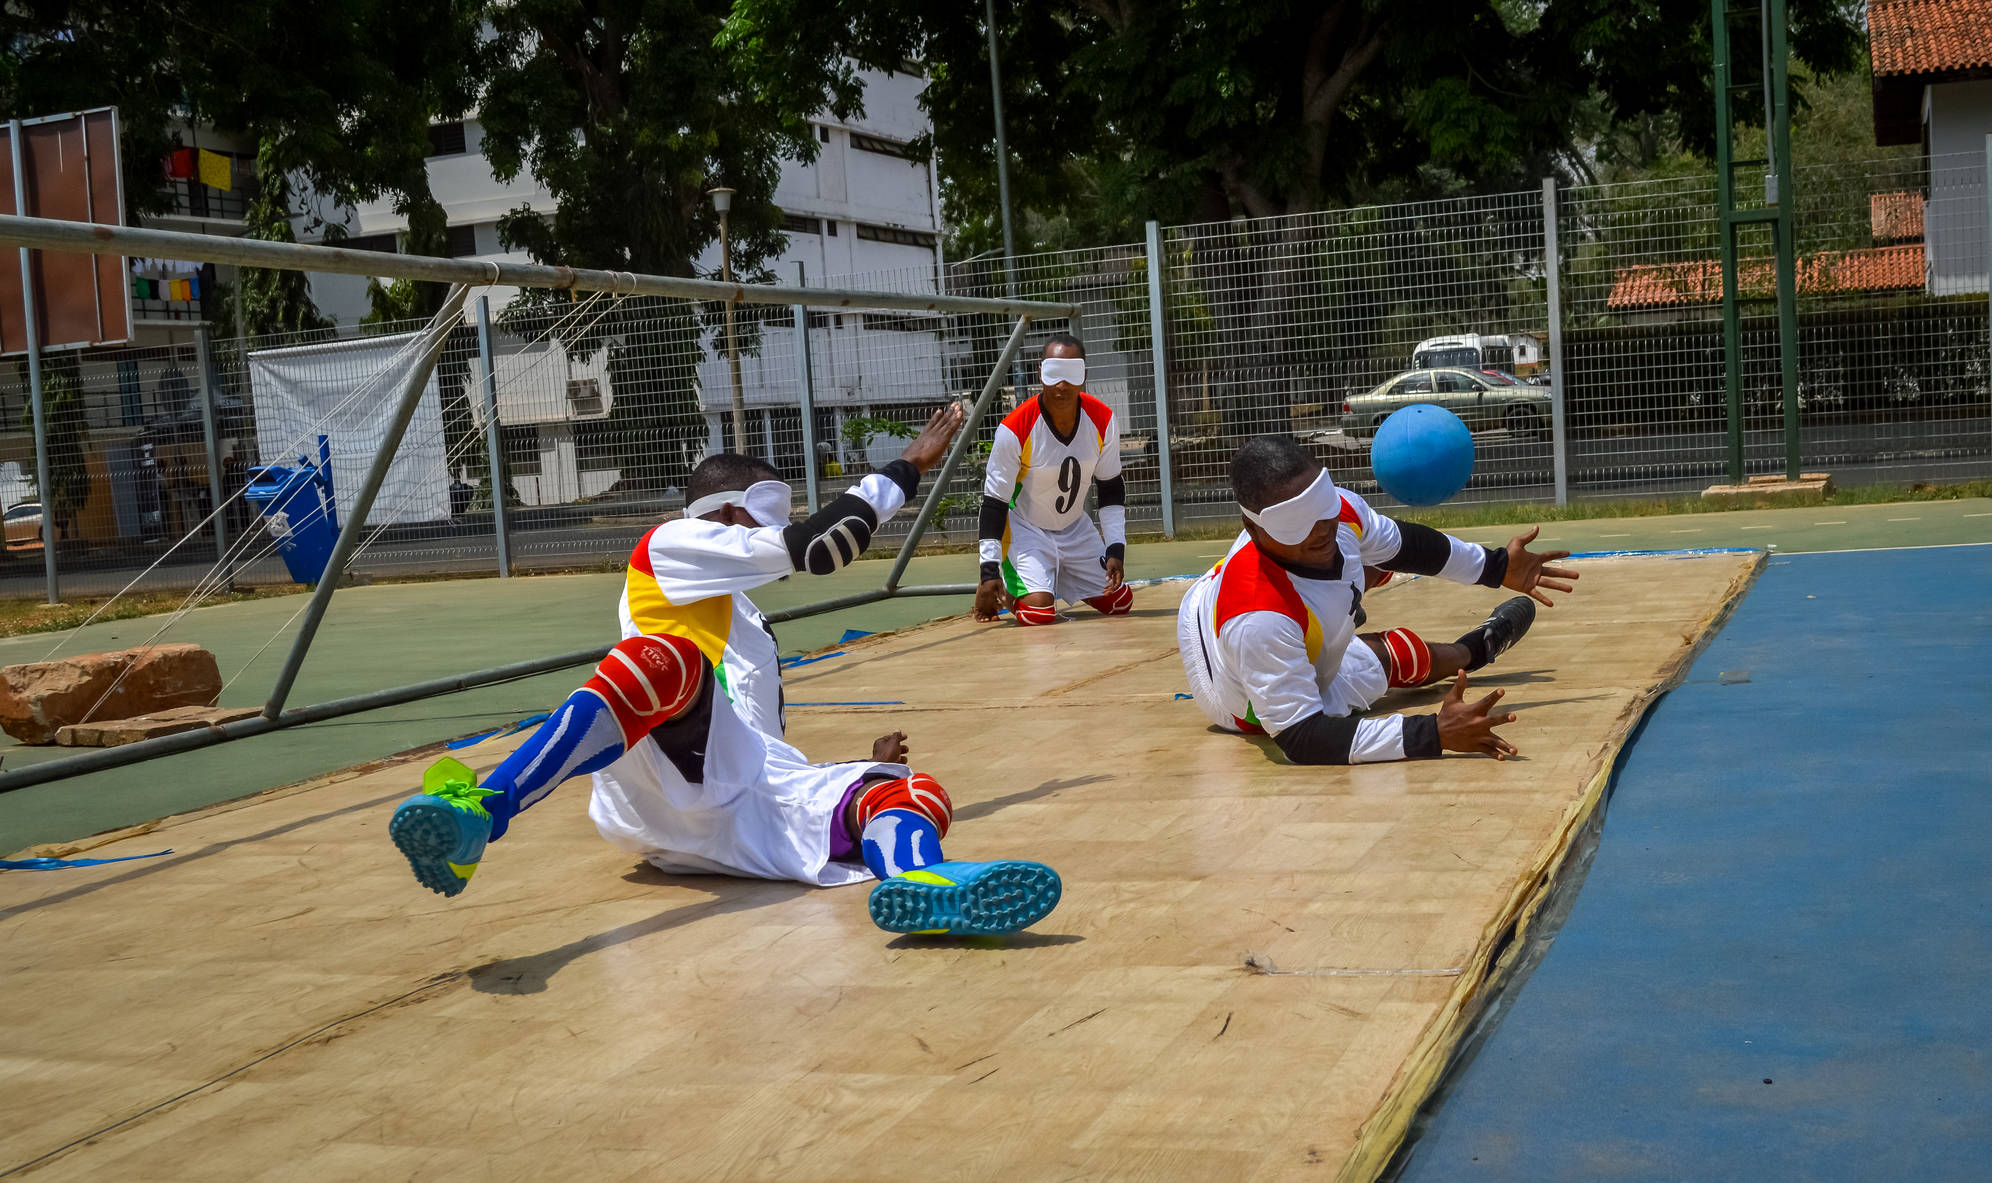 181527314 509881147046323 9069171113793725898 n - Ghana to host 2021 African Championships in Goalball